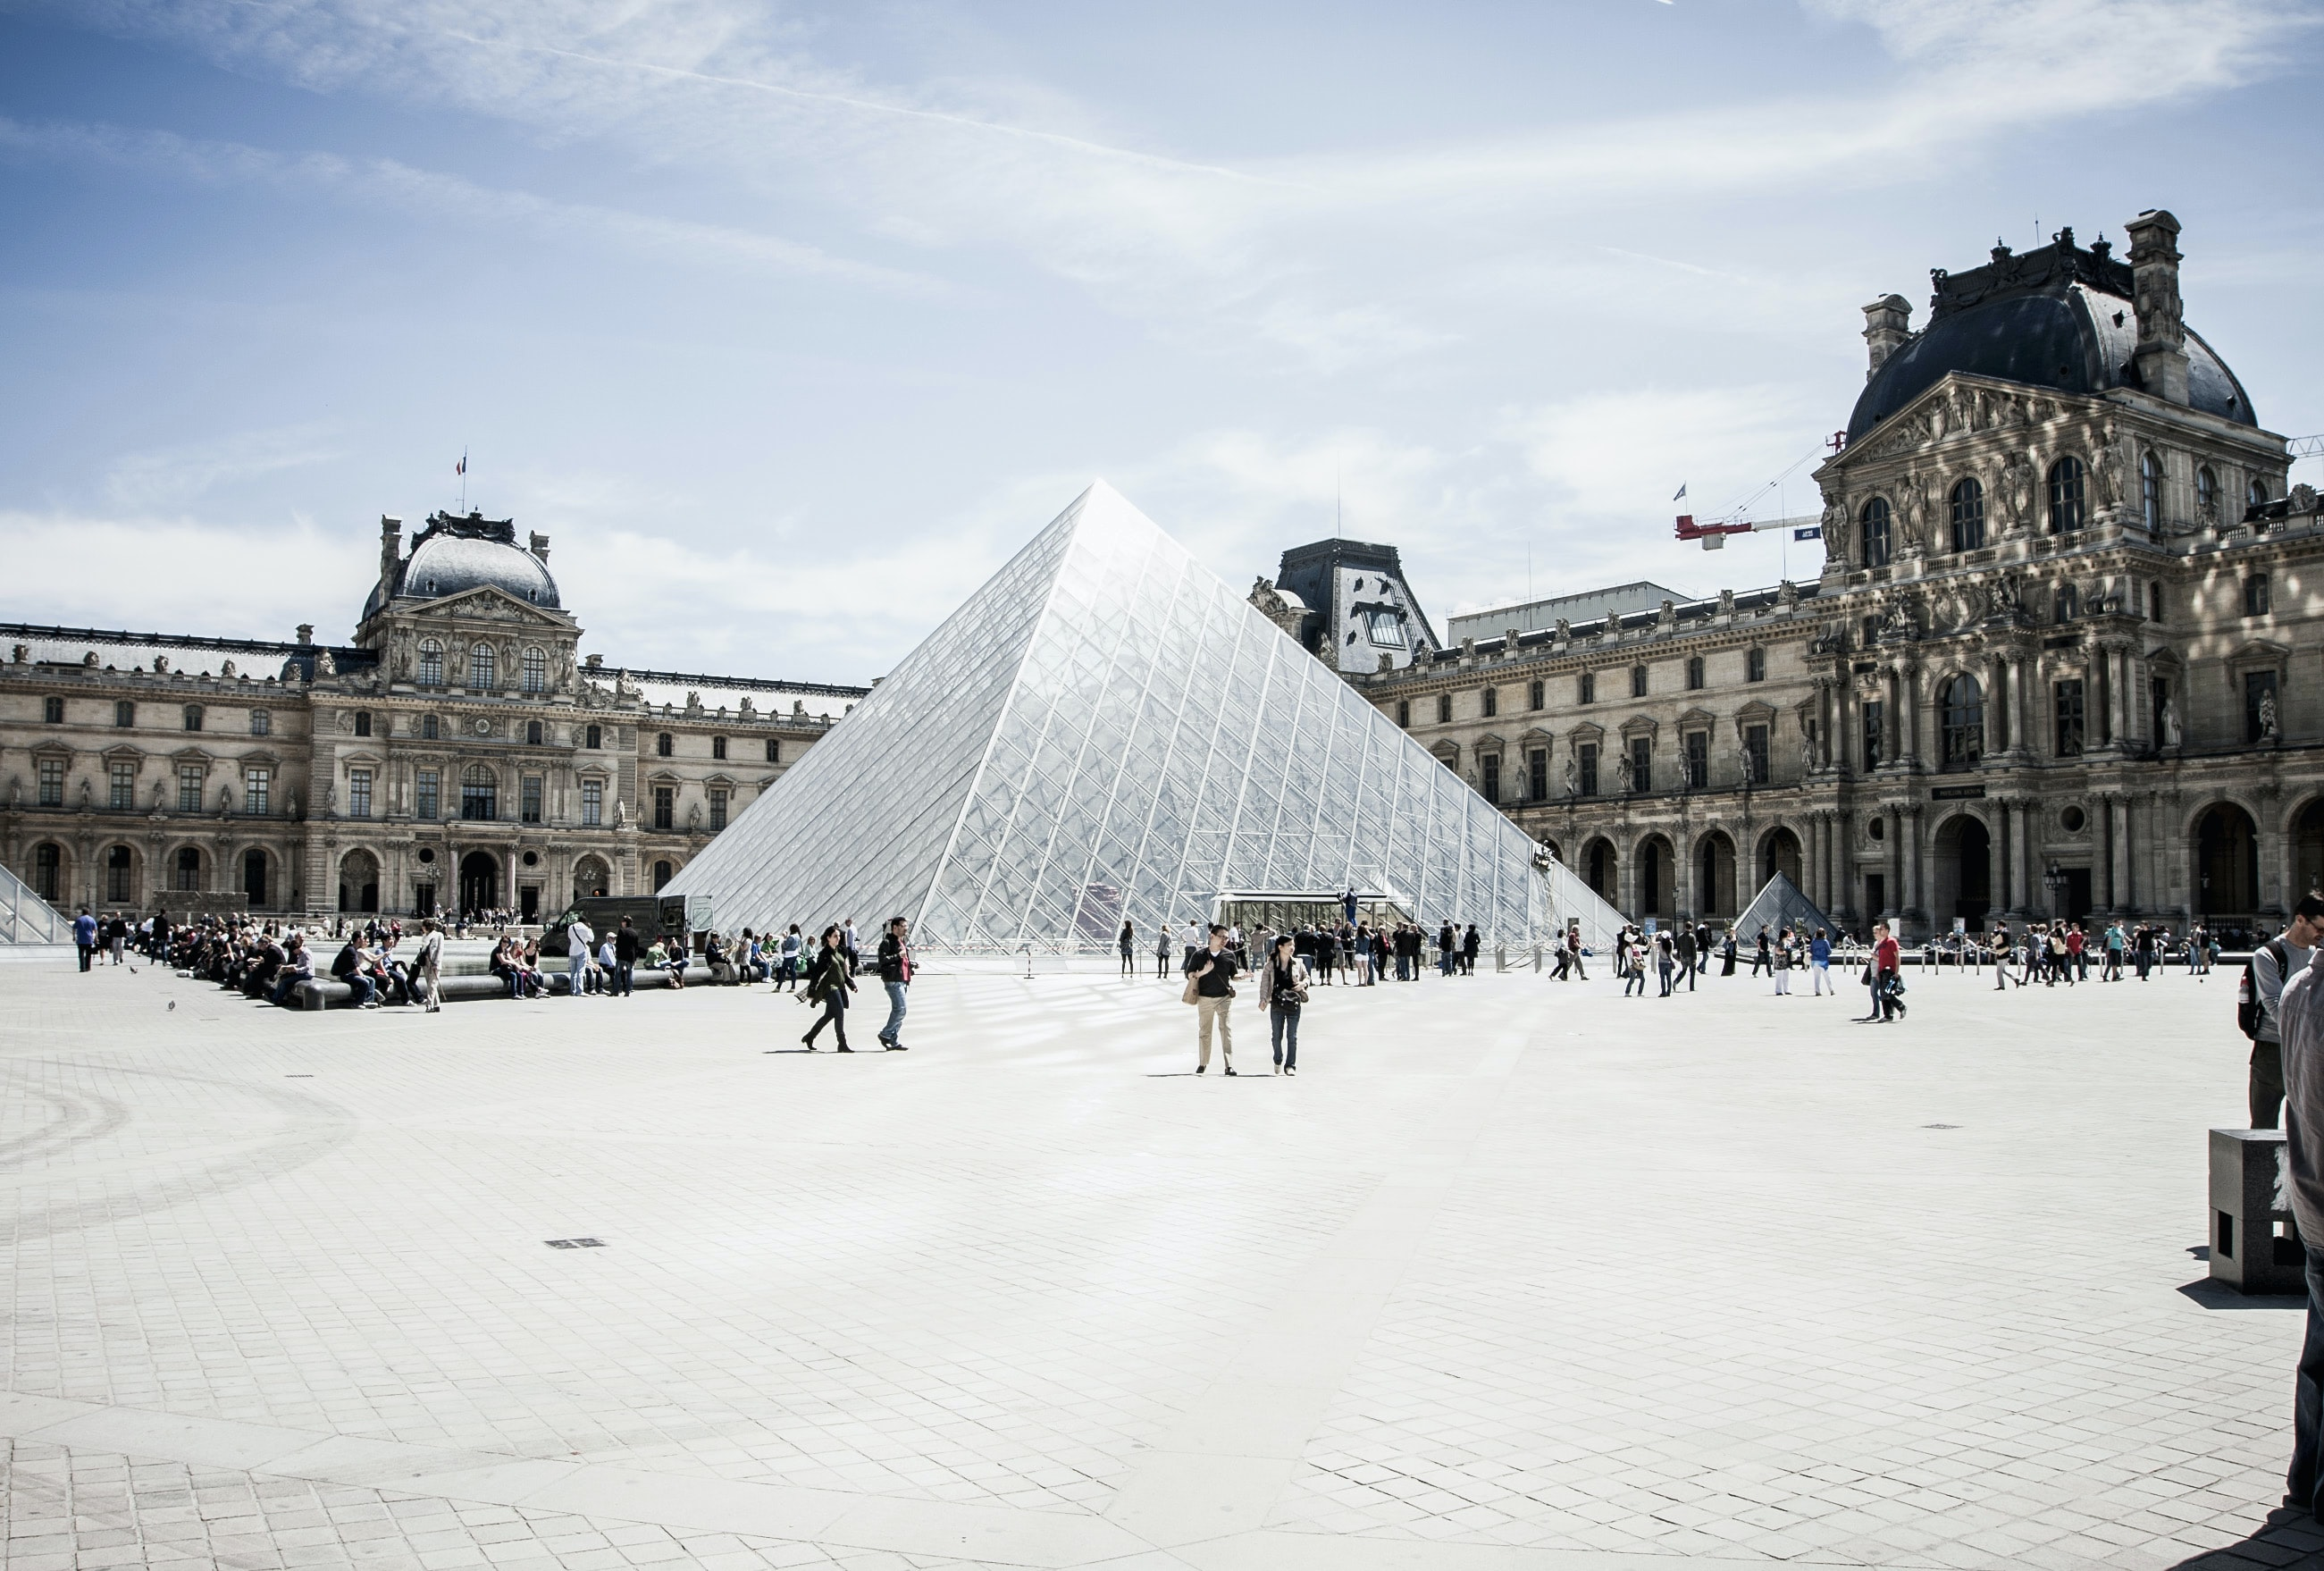 Groups of people walking in front of the glass pyramid in the Louvre courtyard in Paris